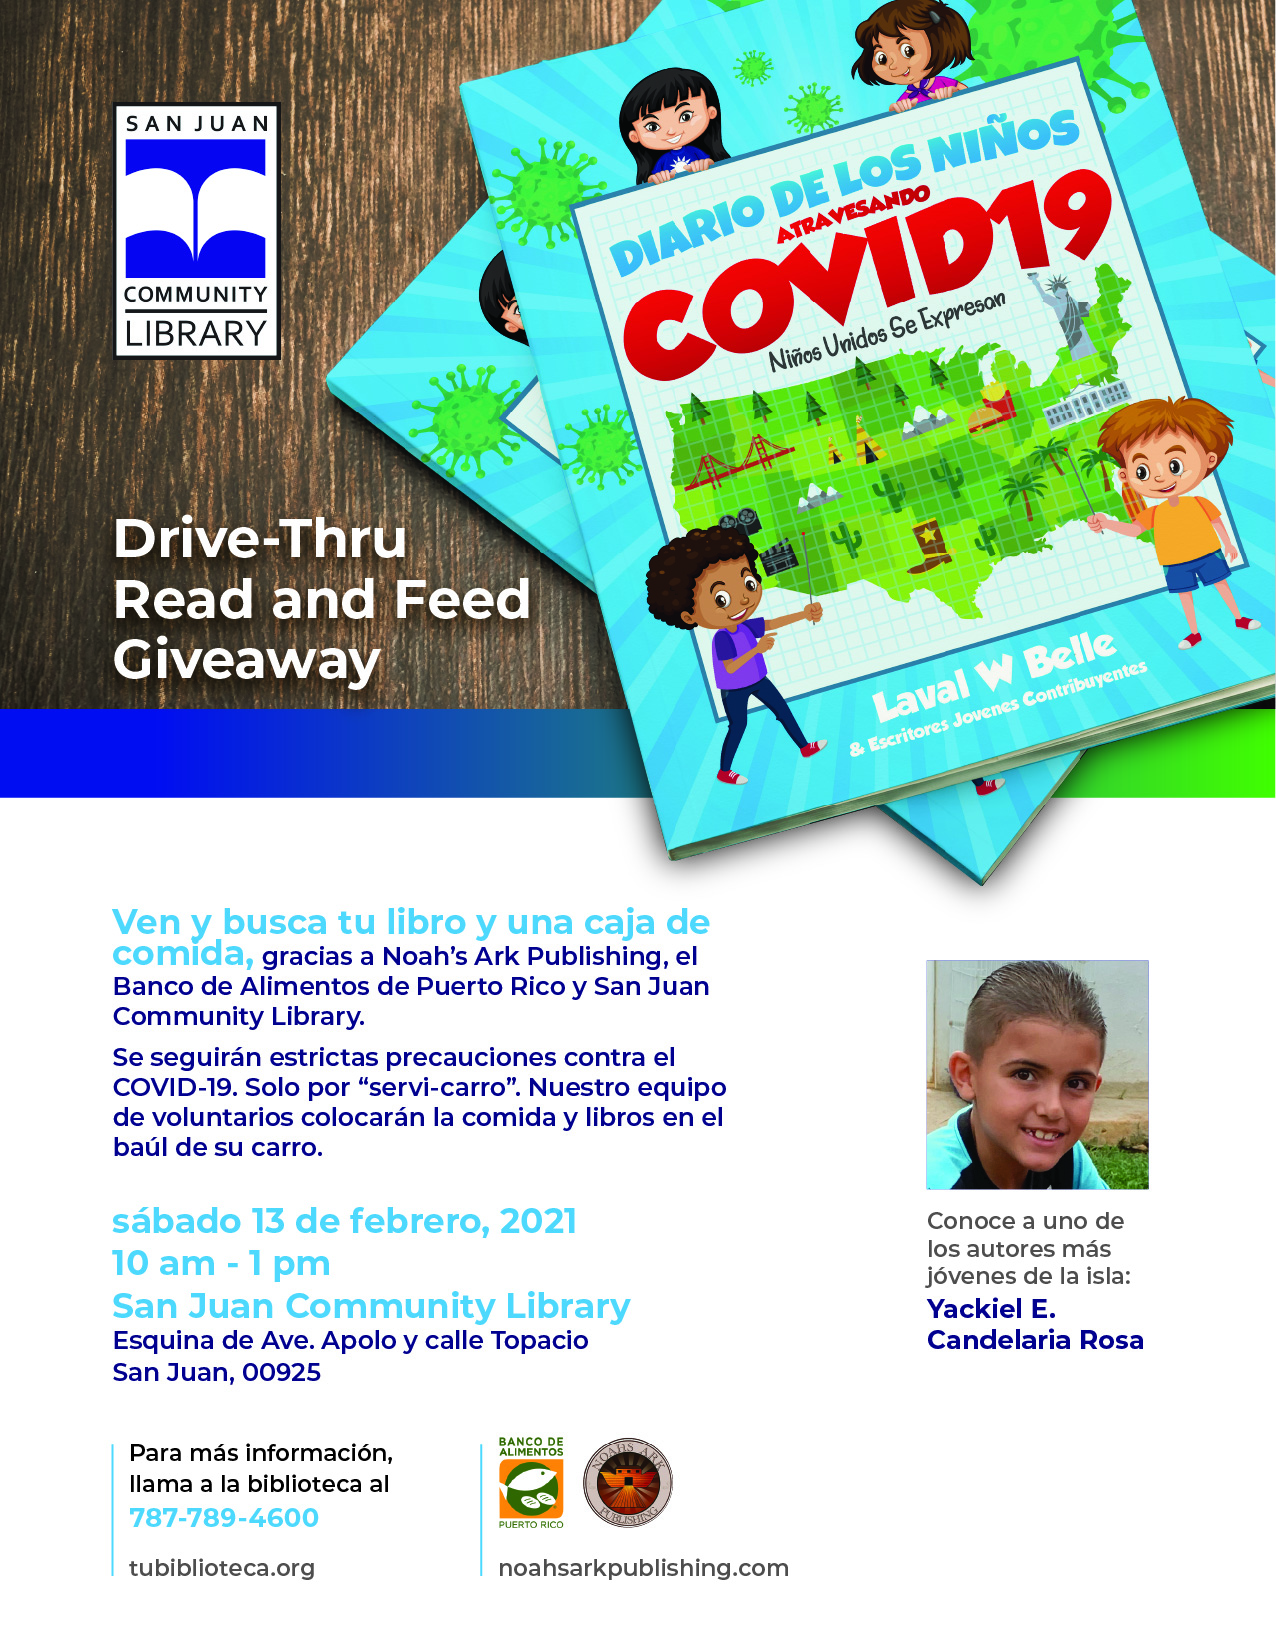 sjcl read and feed giveaway flyer_Spanish(3)